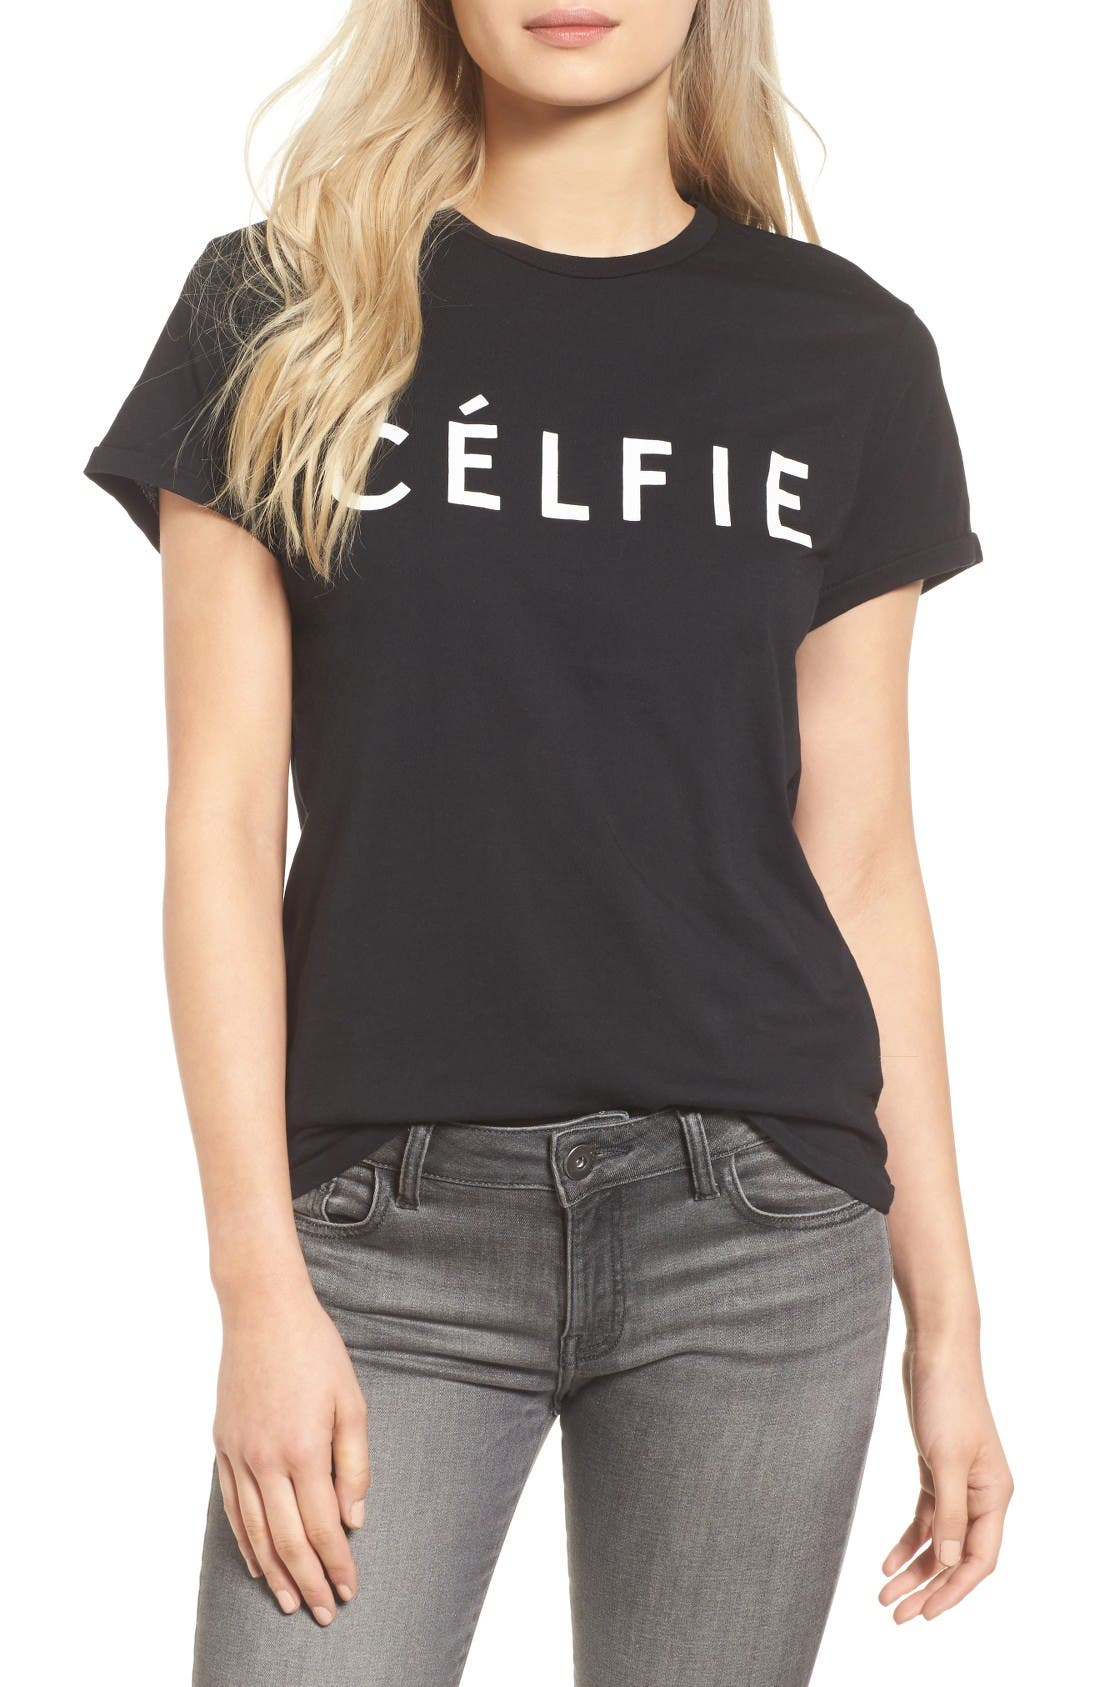 Alternate Image 1 Selected - Sincerely Jules 'Célfie' Graphic Tee